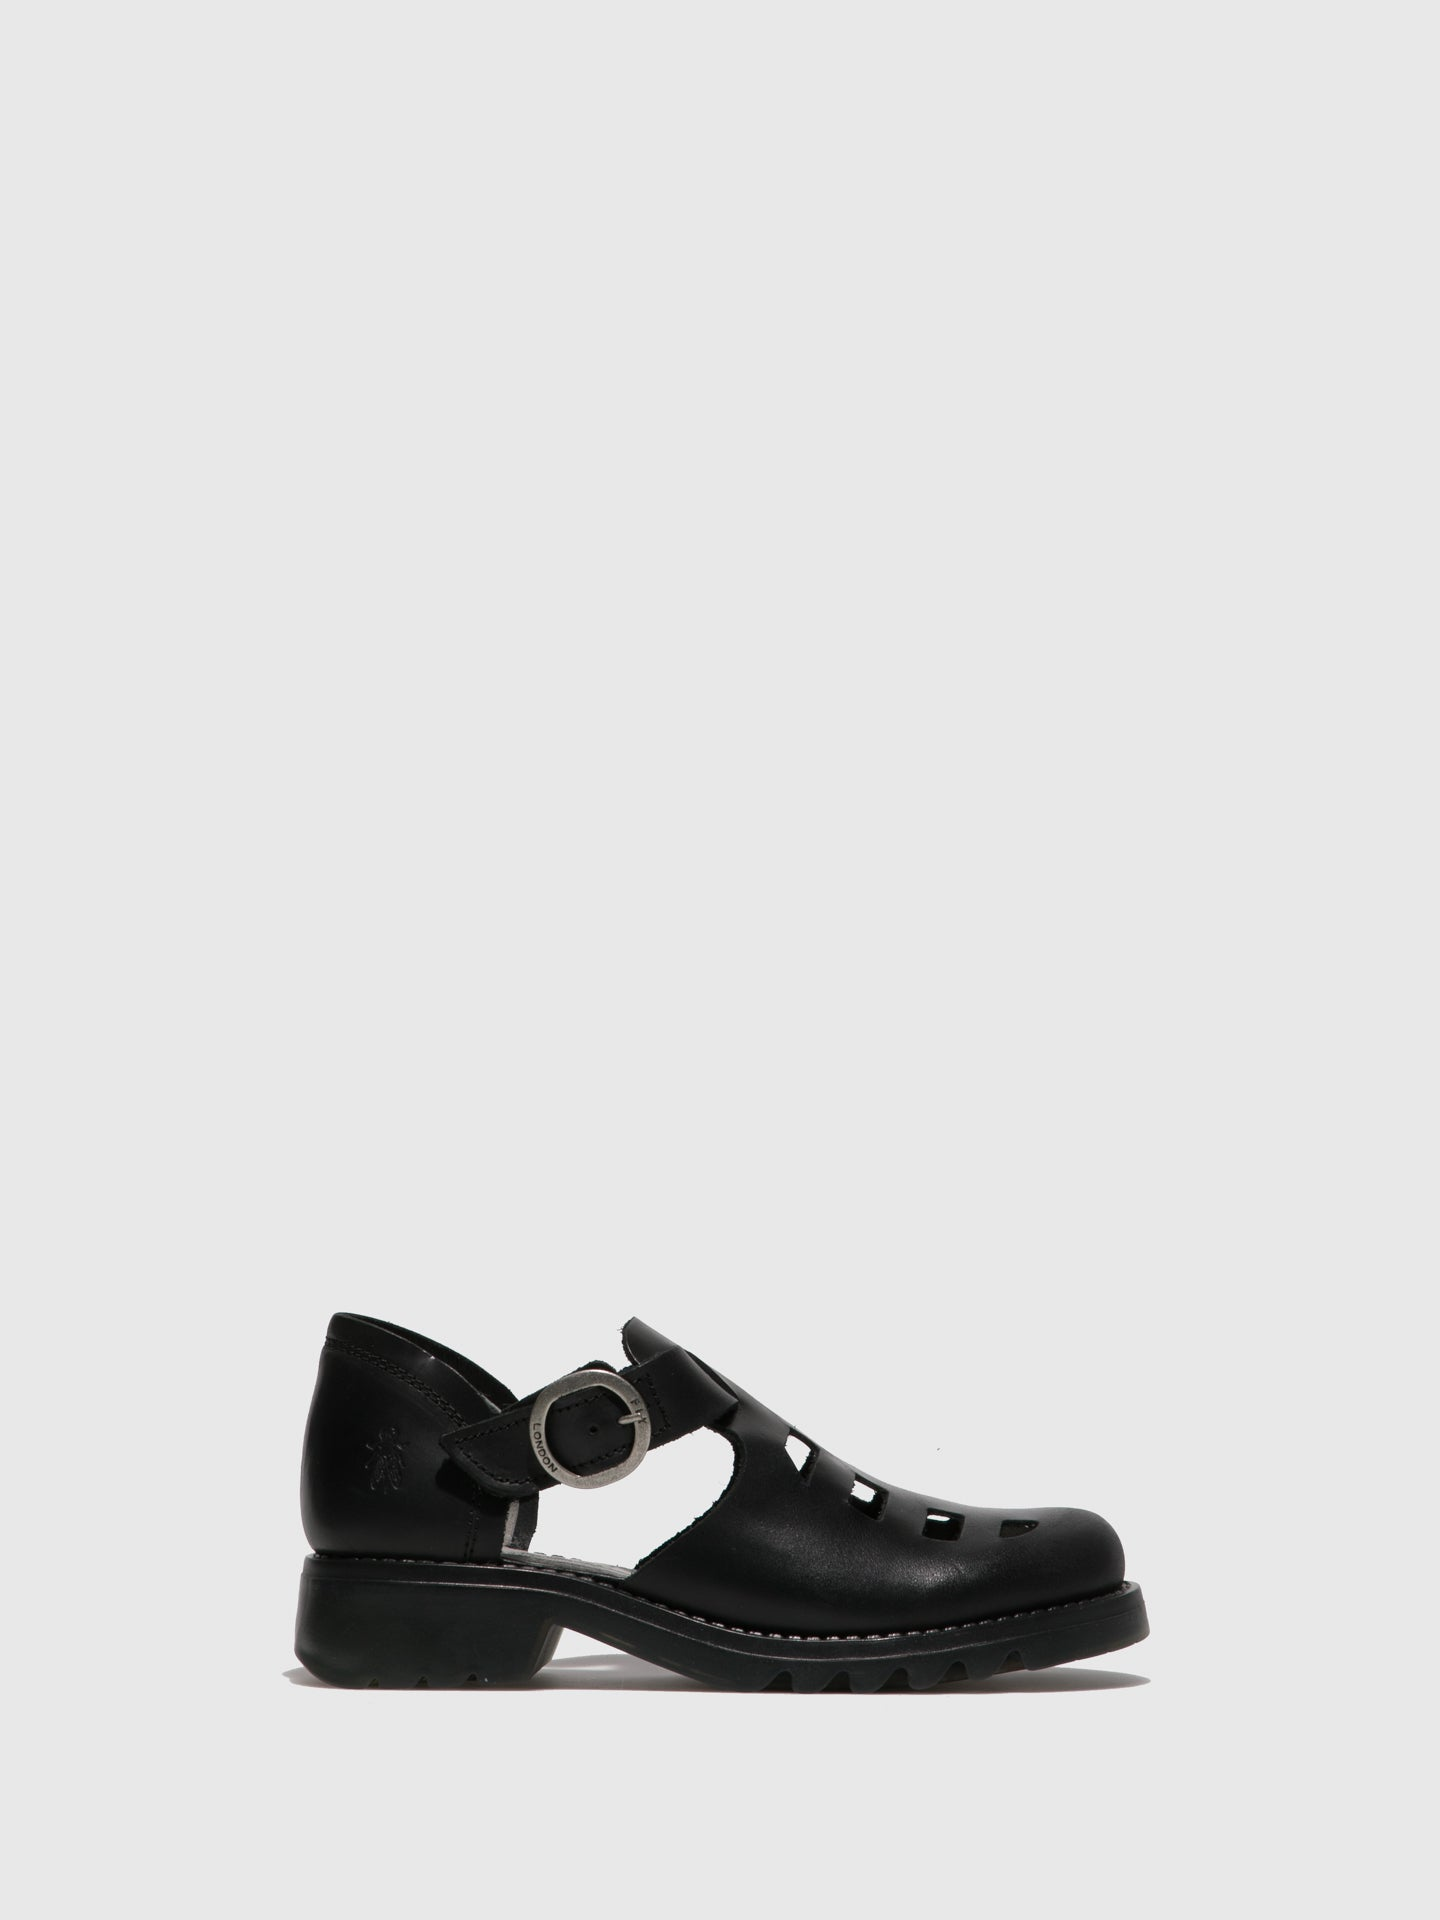 Fly London Black Buckle Shoes